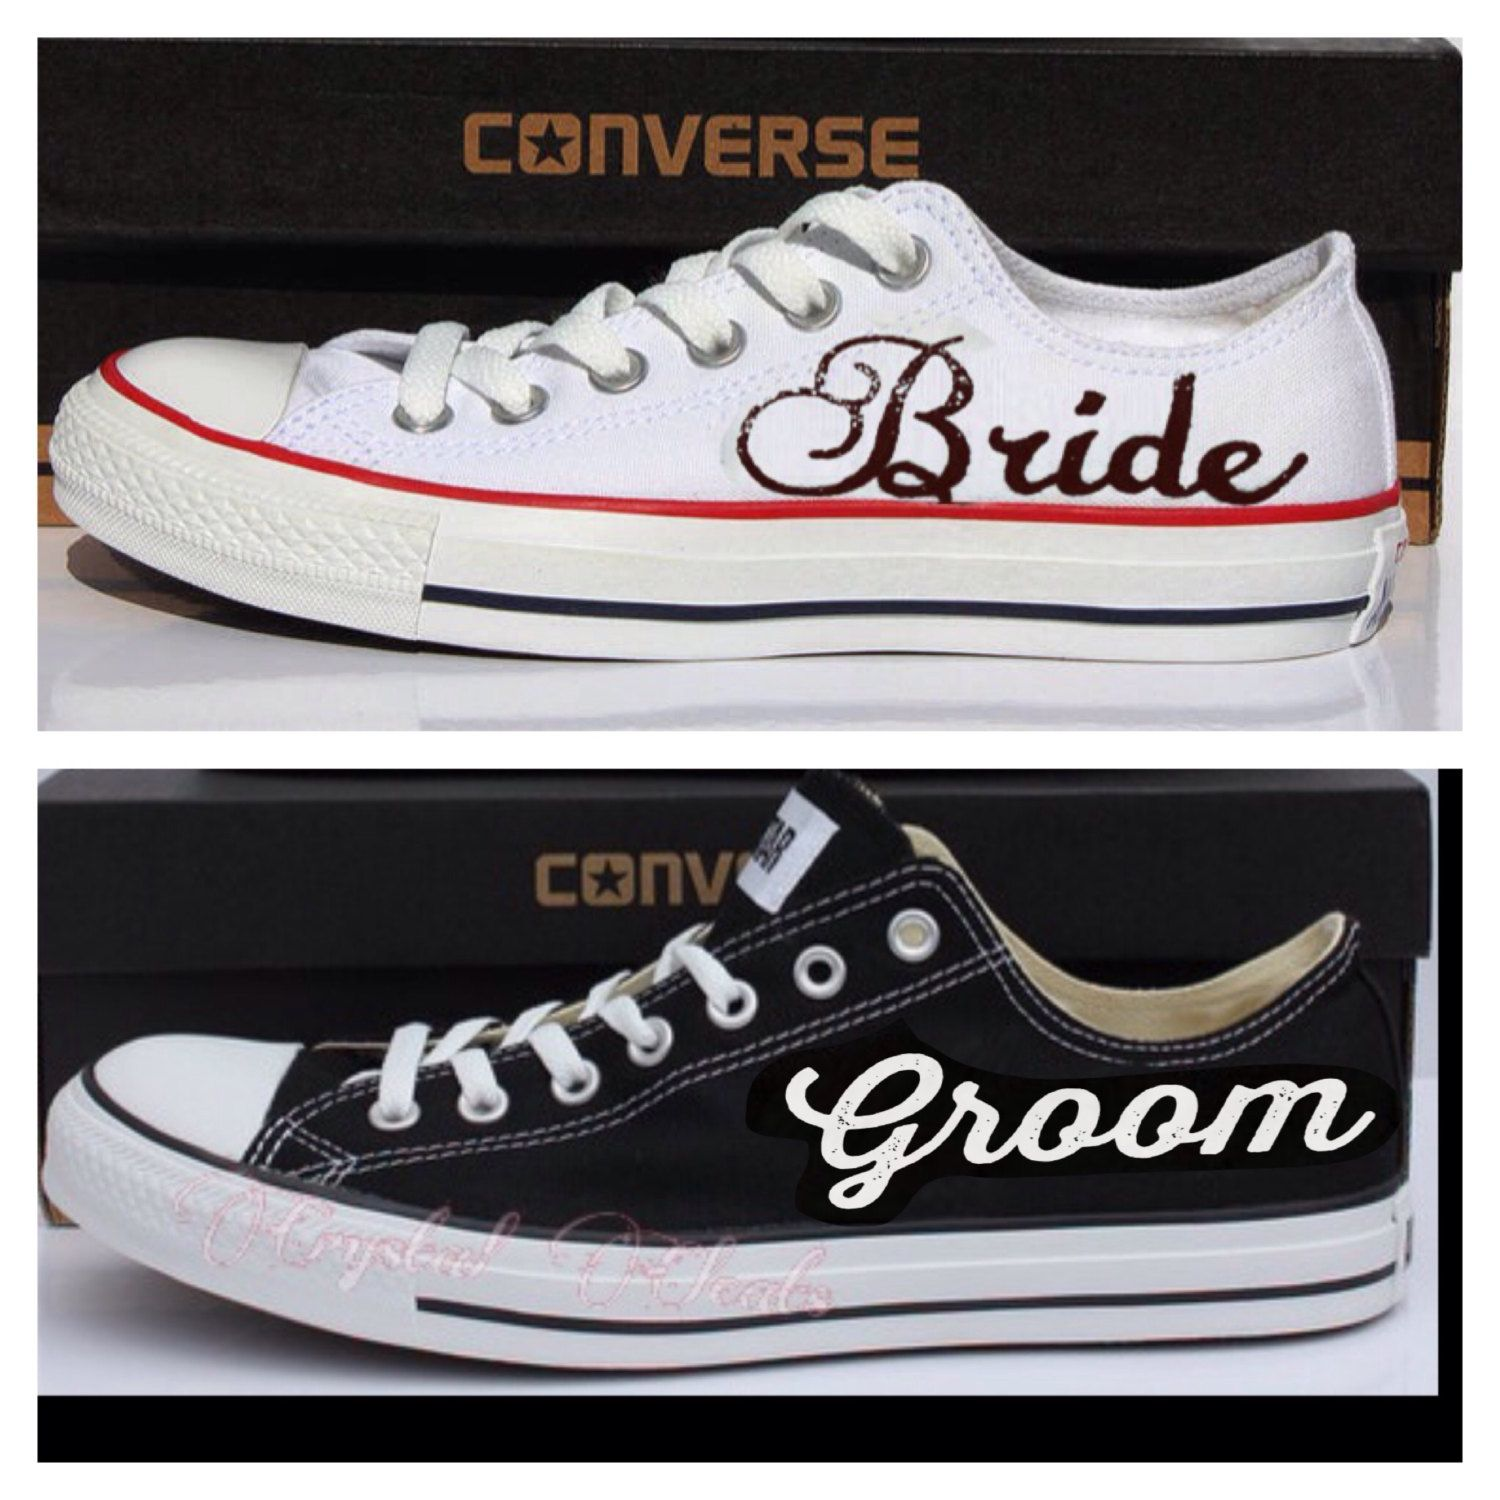 Hochzeits Sneaker 2 Pairs Bride And Groom Black And White Converse All Star